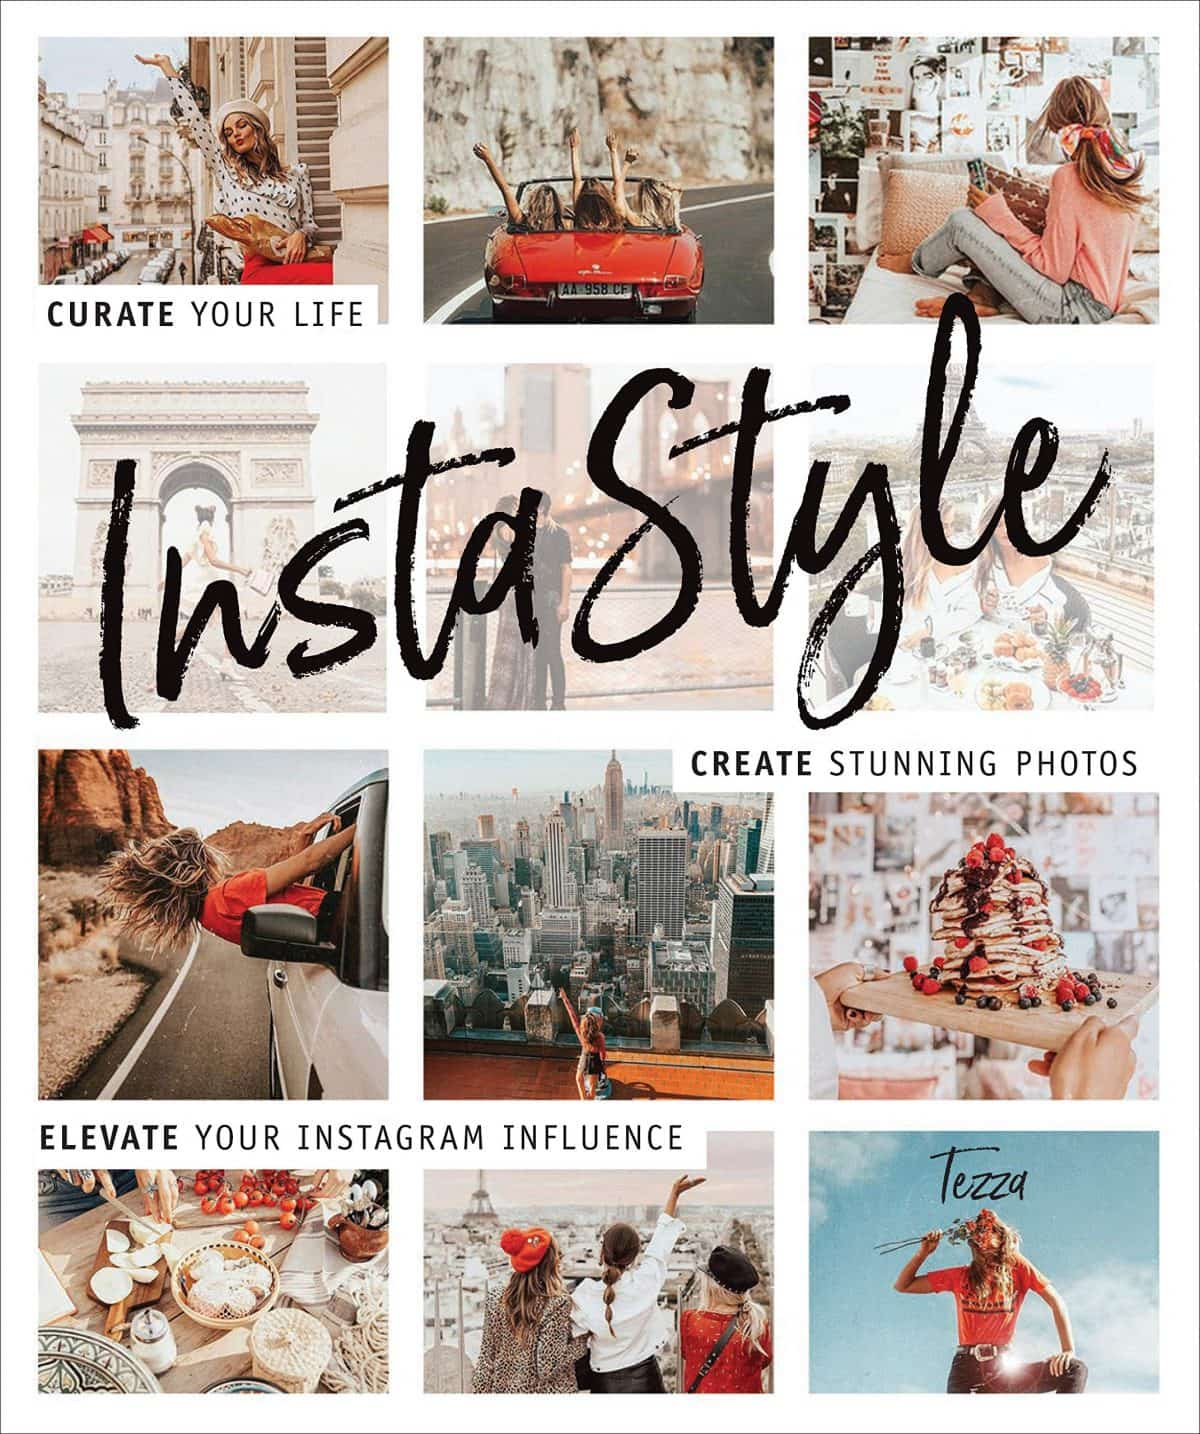 Create your own InstaStyle on Instagram